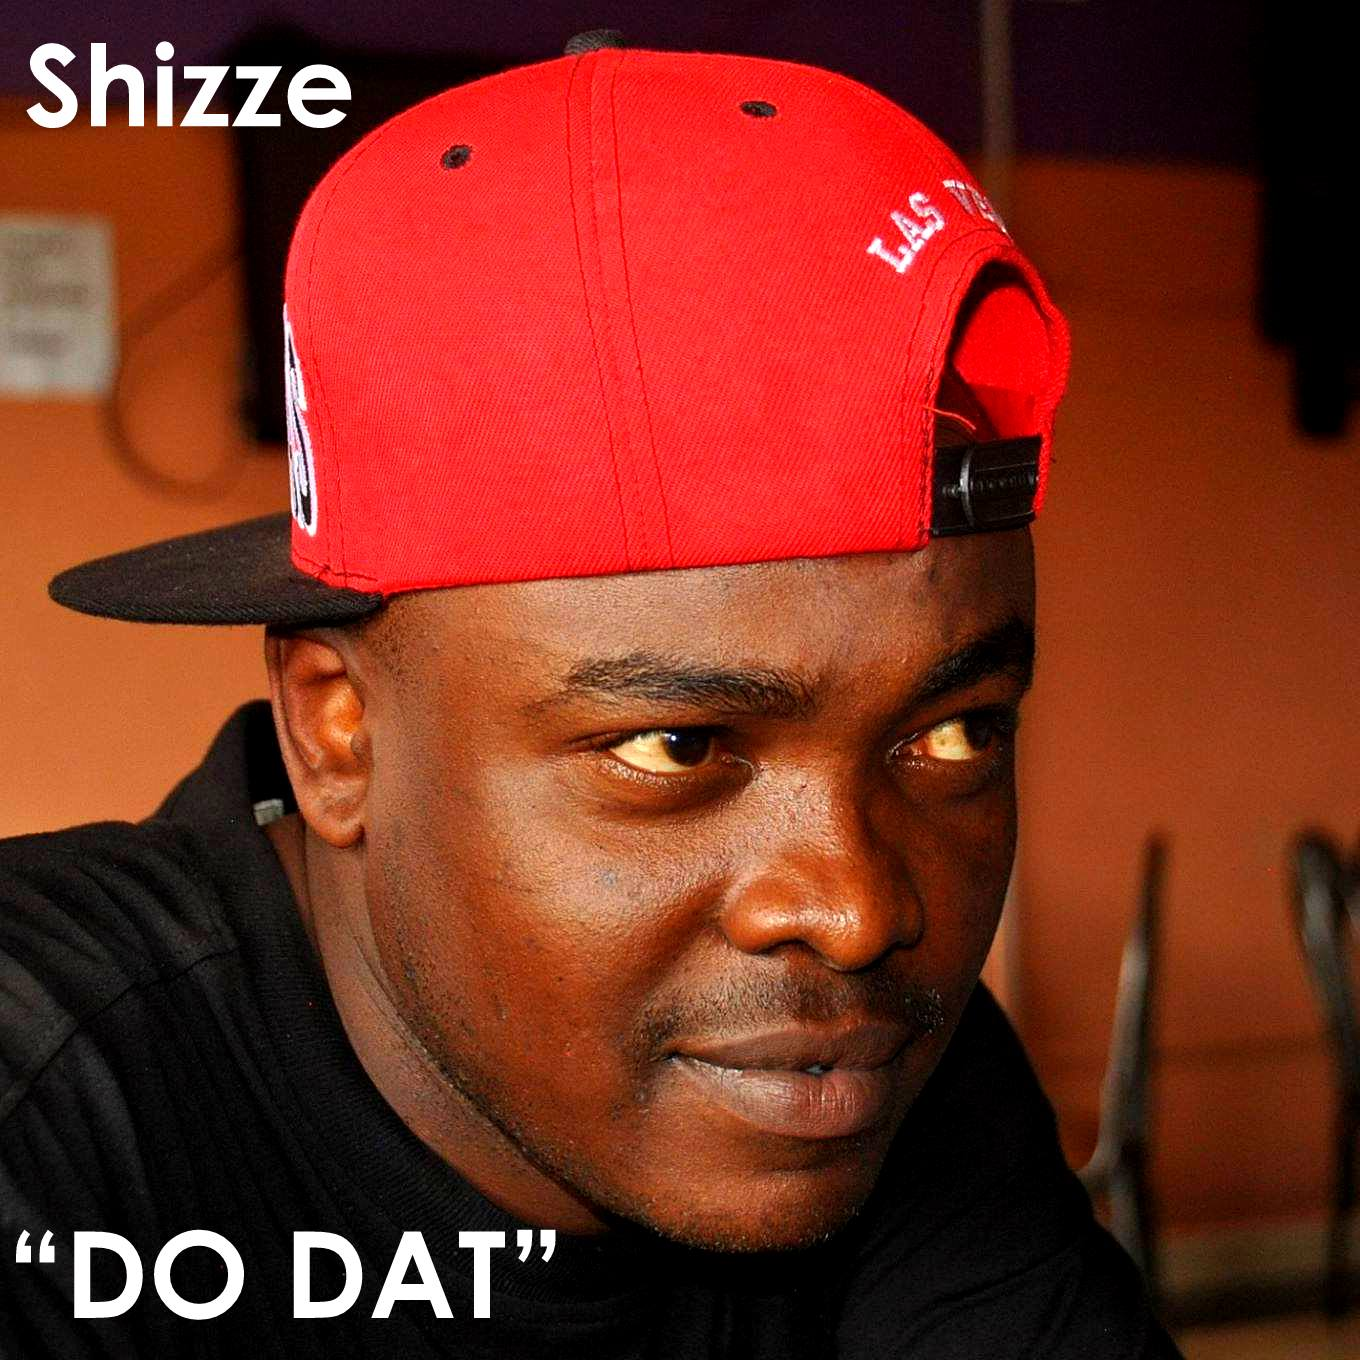 Shizze - DO DAT